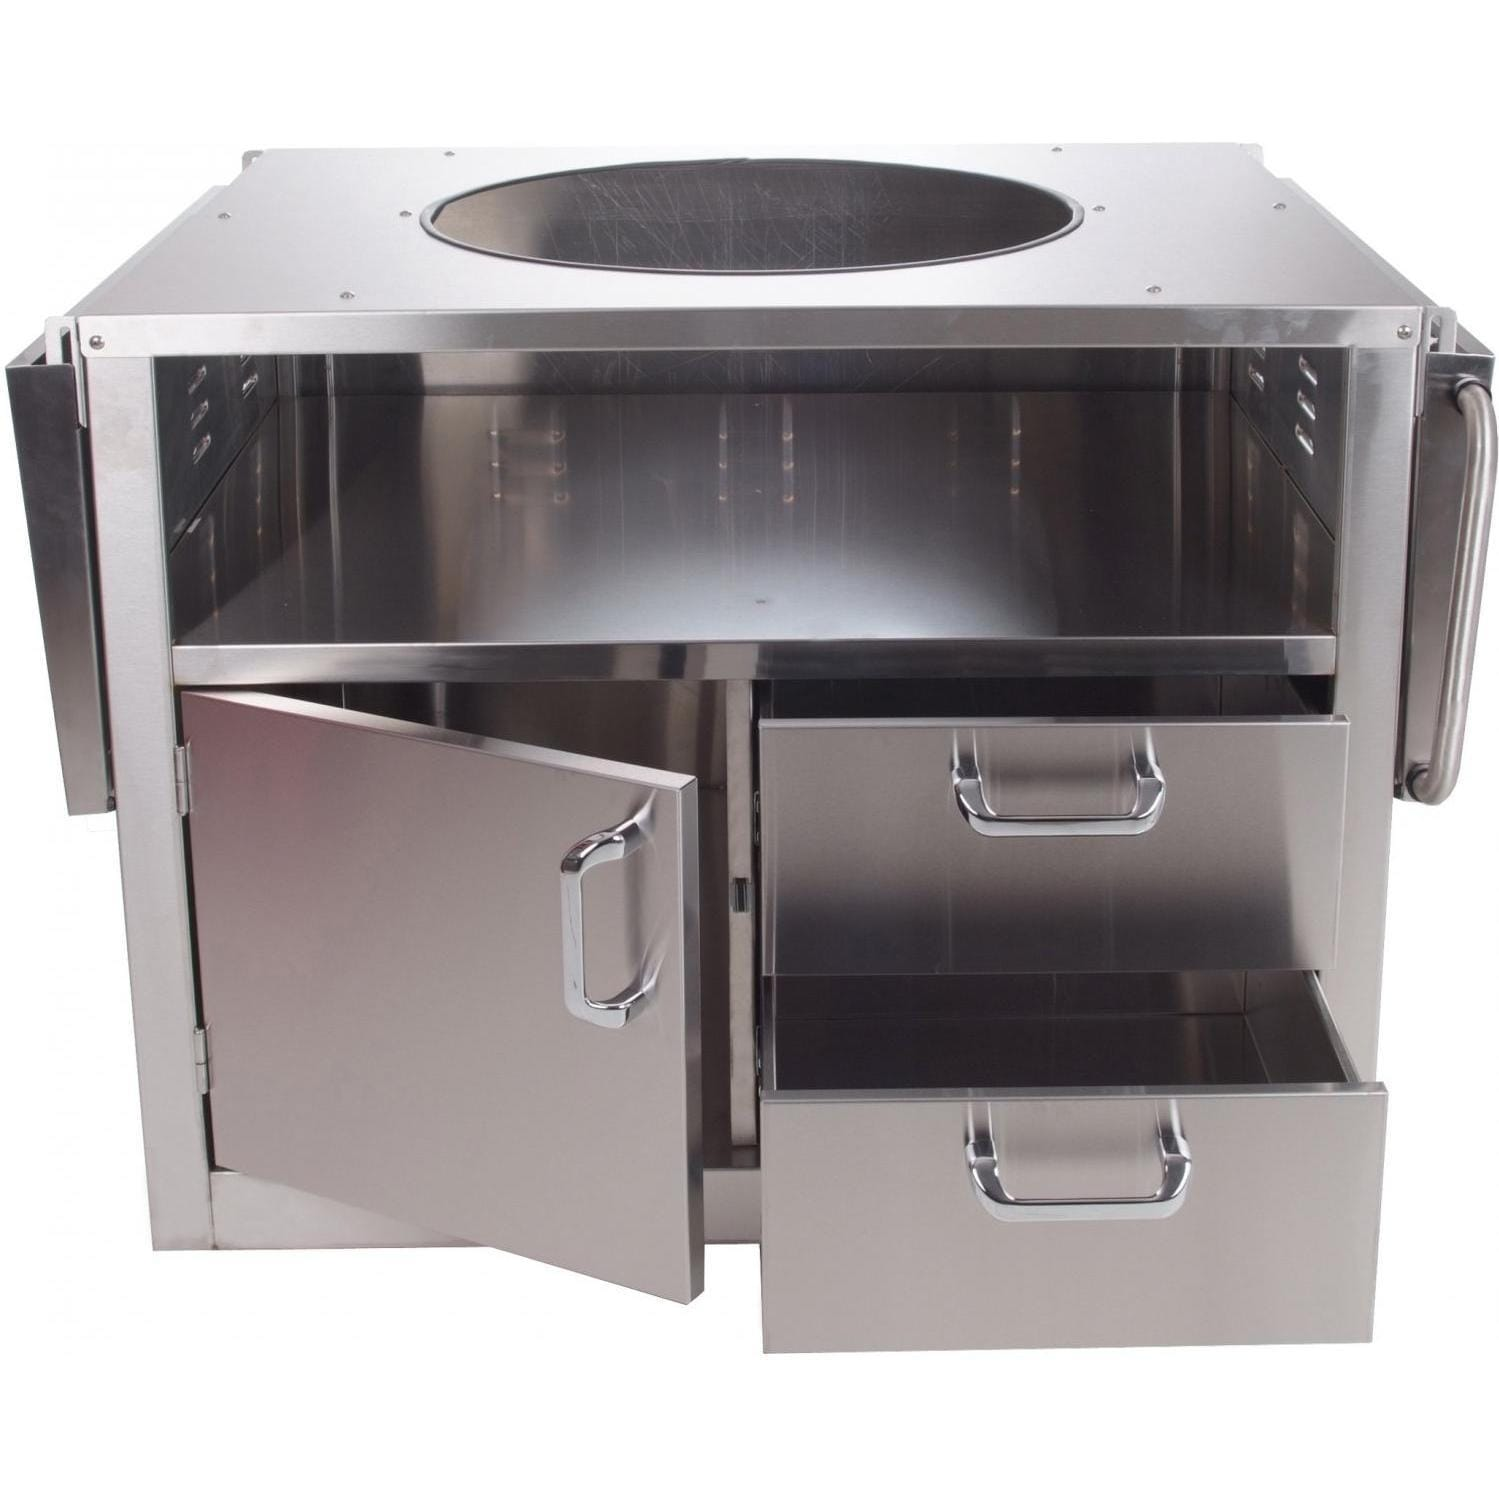 BBQ Guys Stainless Steel Kamado Cart Open With Shelves Down. Stainless  Steel Cart For Large Big Green Egg ...